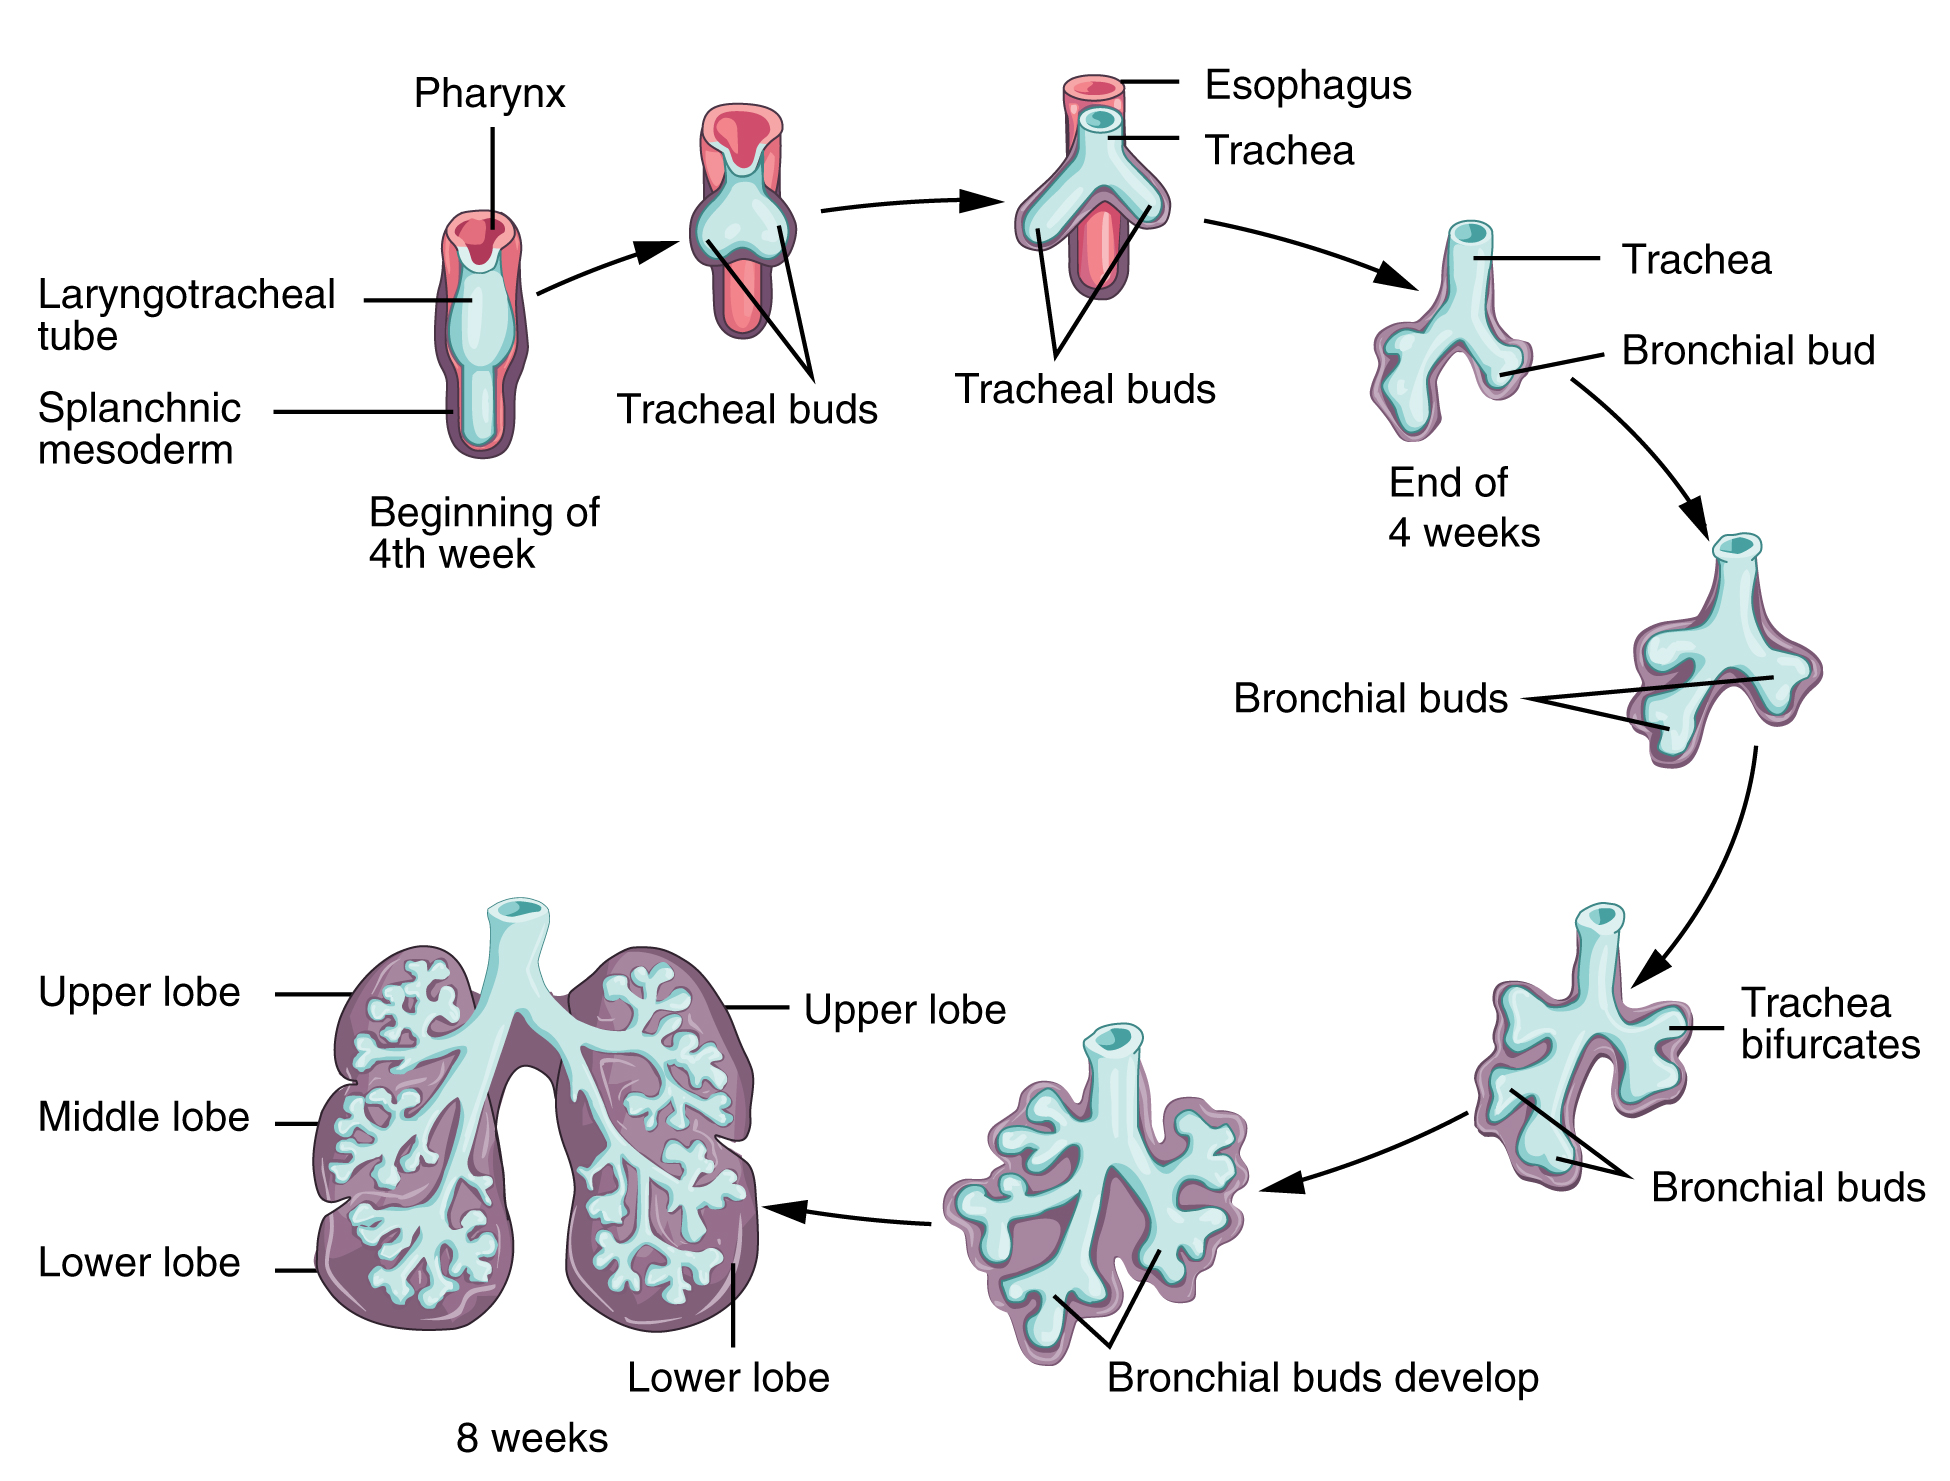 This flowchart shows the embryonic development of the respiratory system and correlates the gestational age to the appearance of new features.